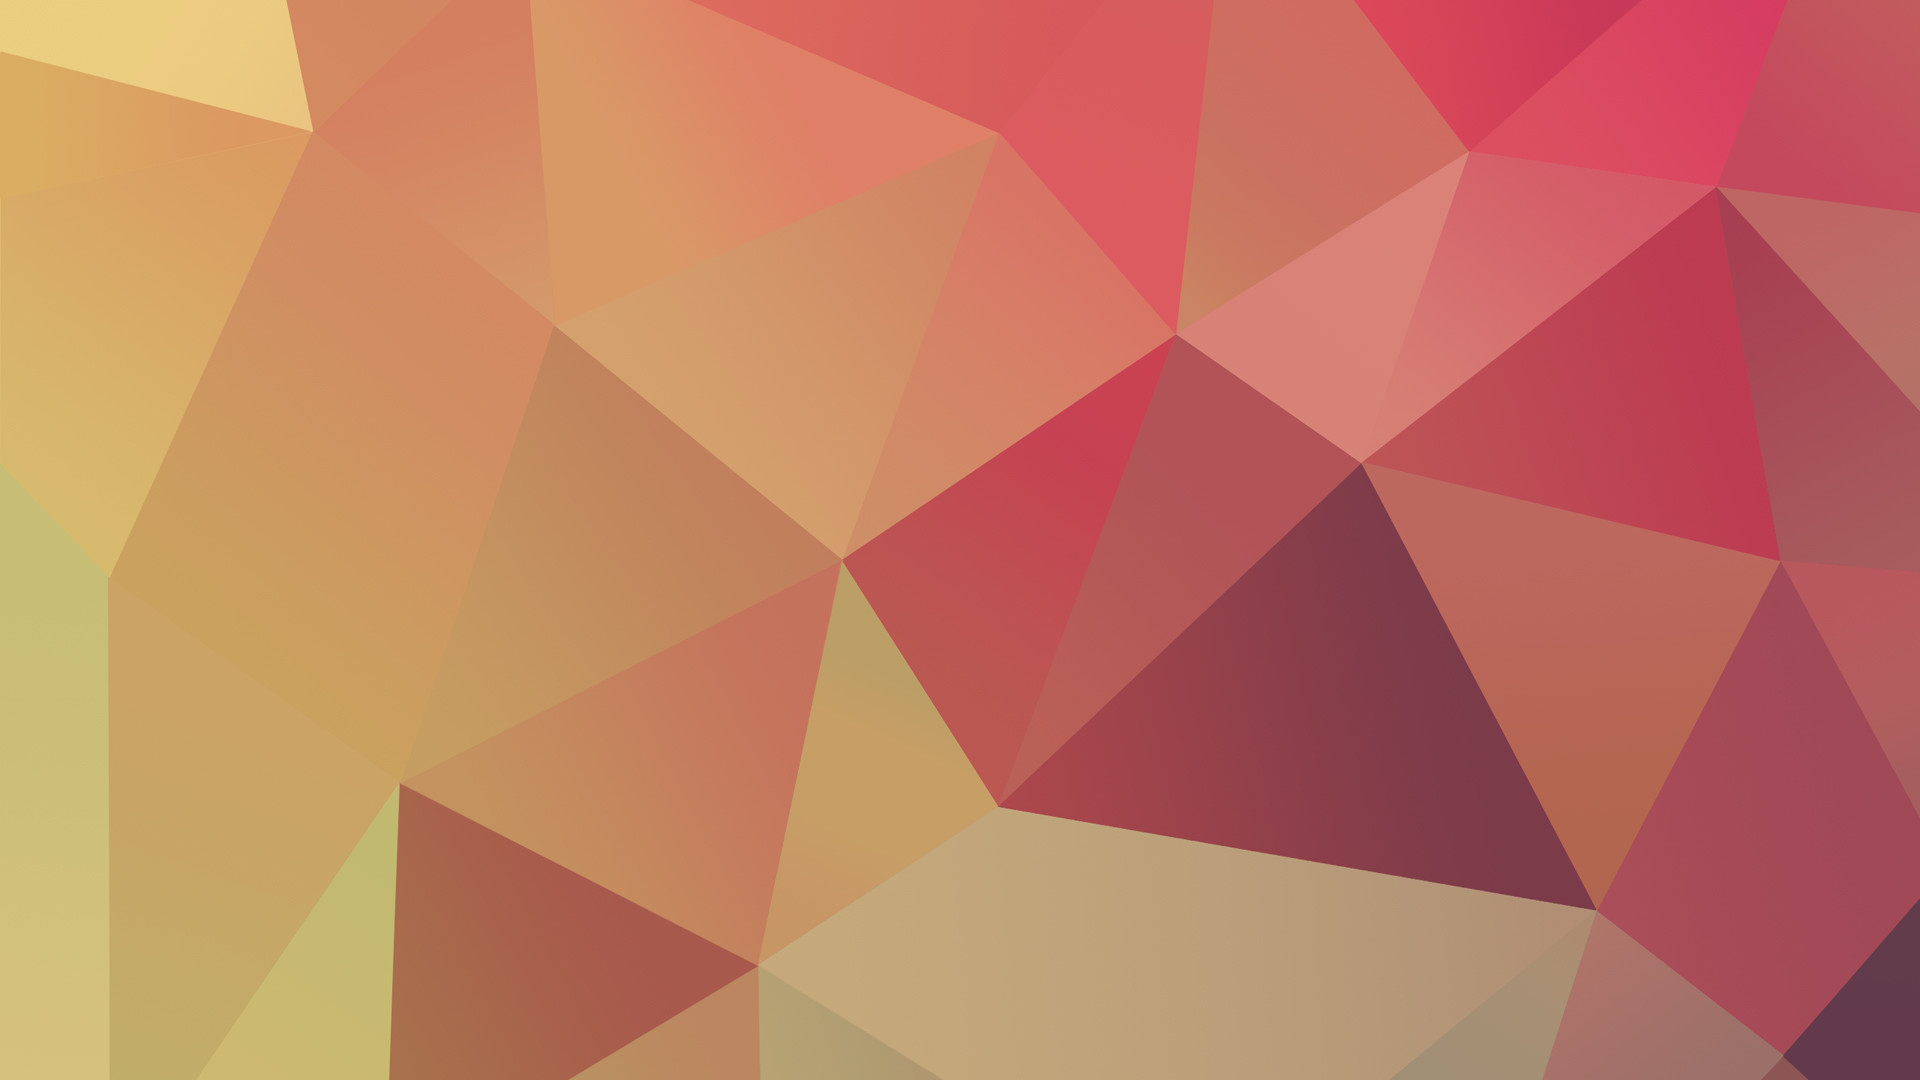 jelly, nexus, android, wallpaper, geometric, wallpapers, abstract